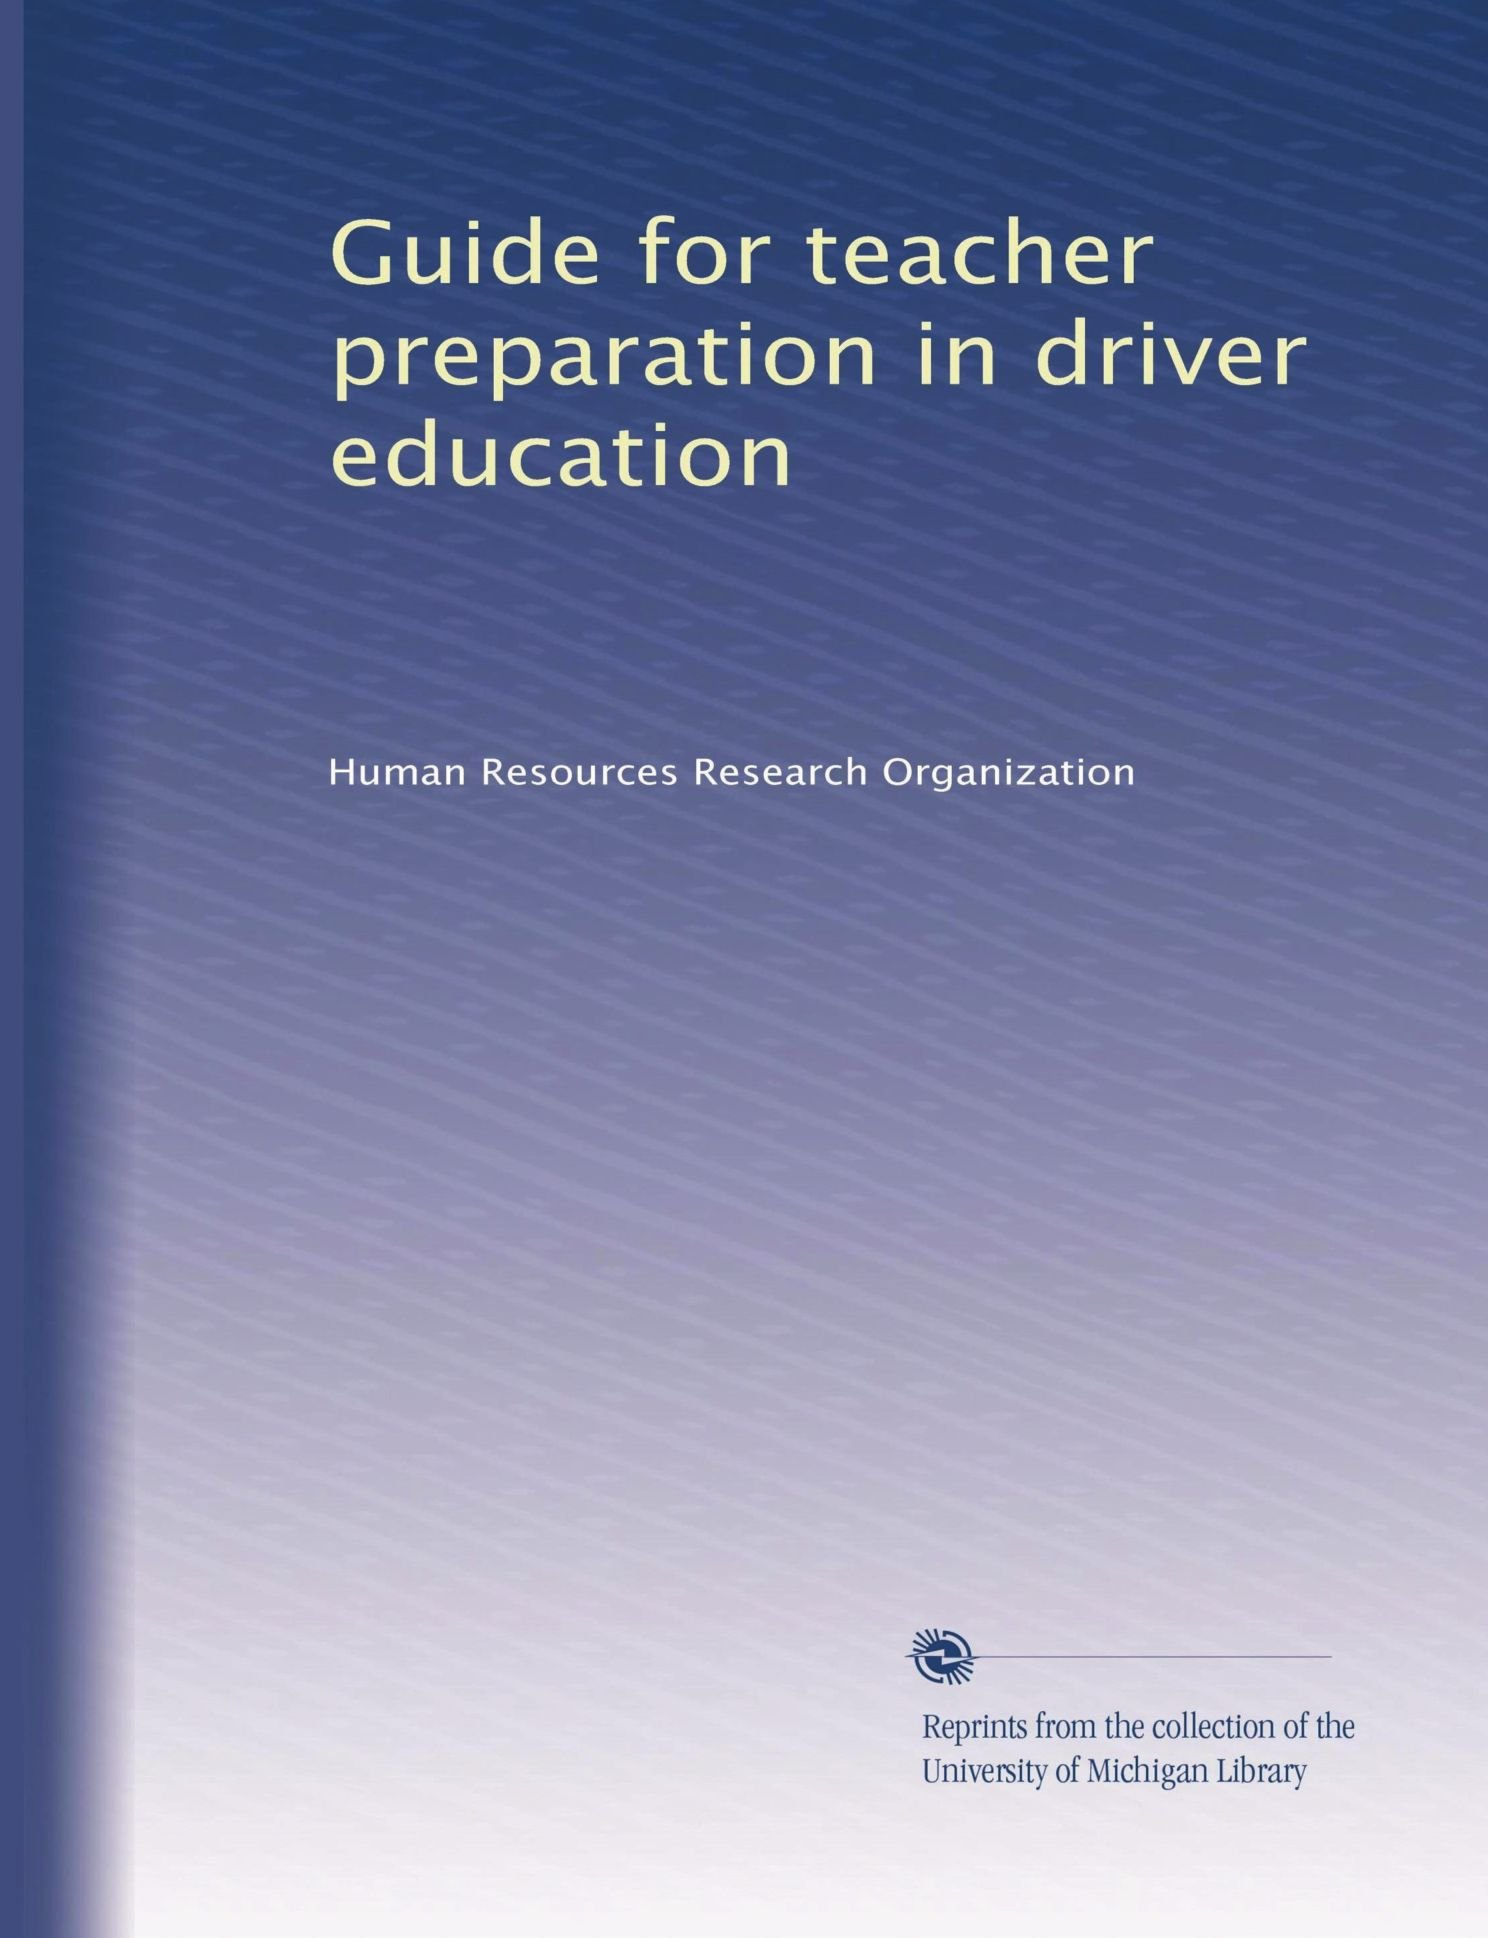 Guide for teacher preparation in driver education